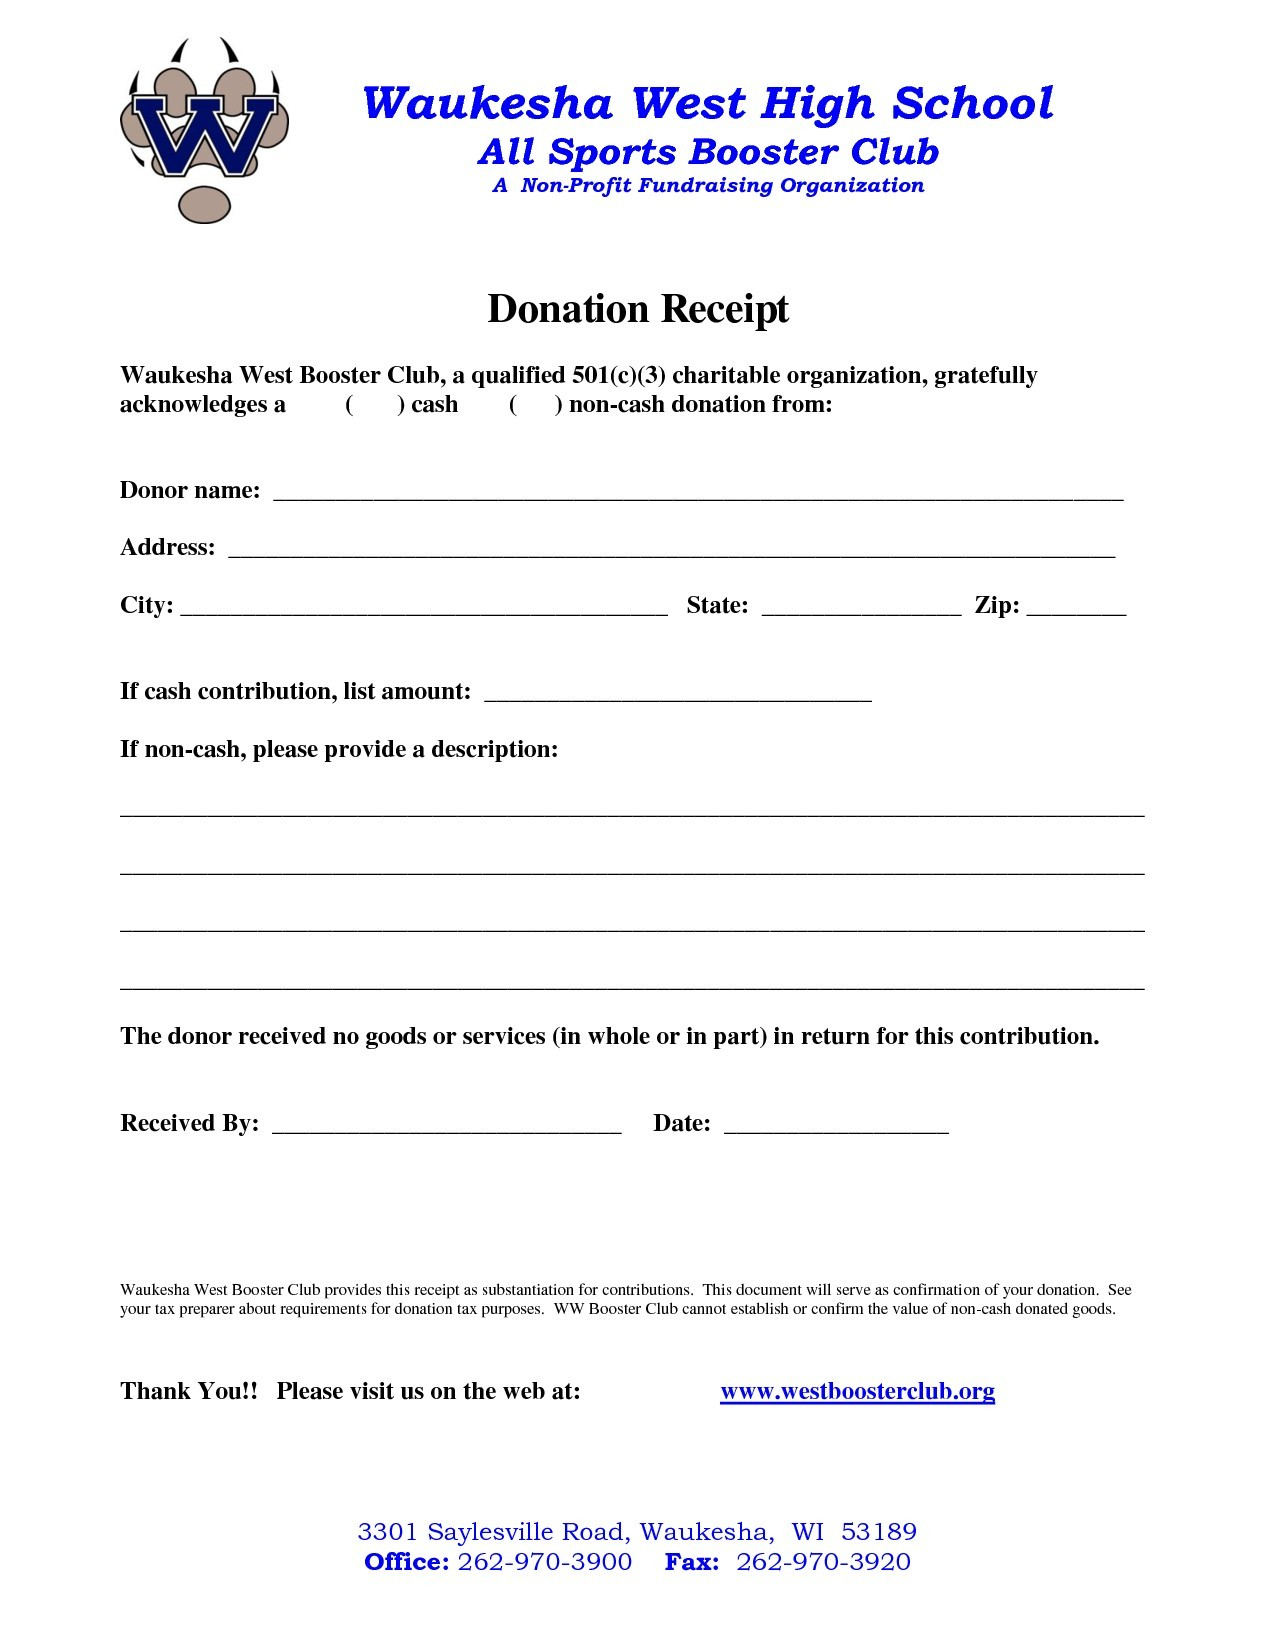 Donation Receipt Letter Template - Donation Receipt Template New Awesome Non Profit Donation Receipt